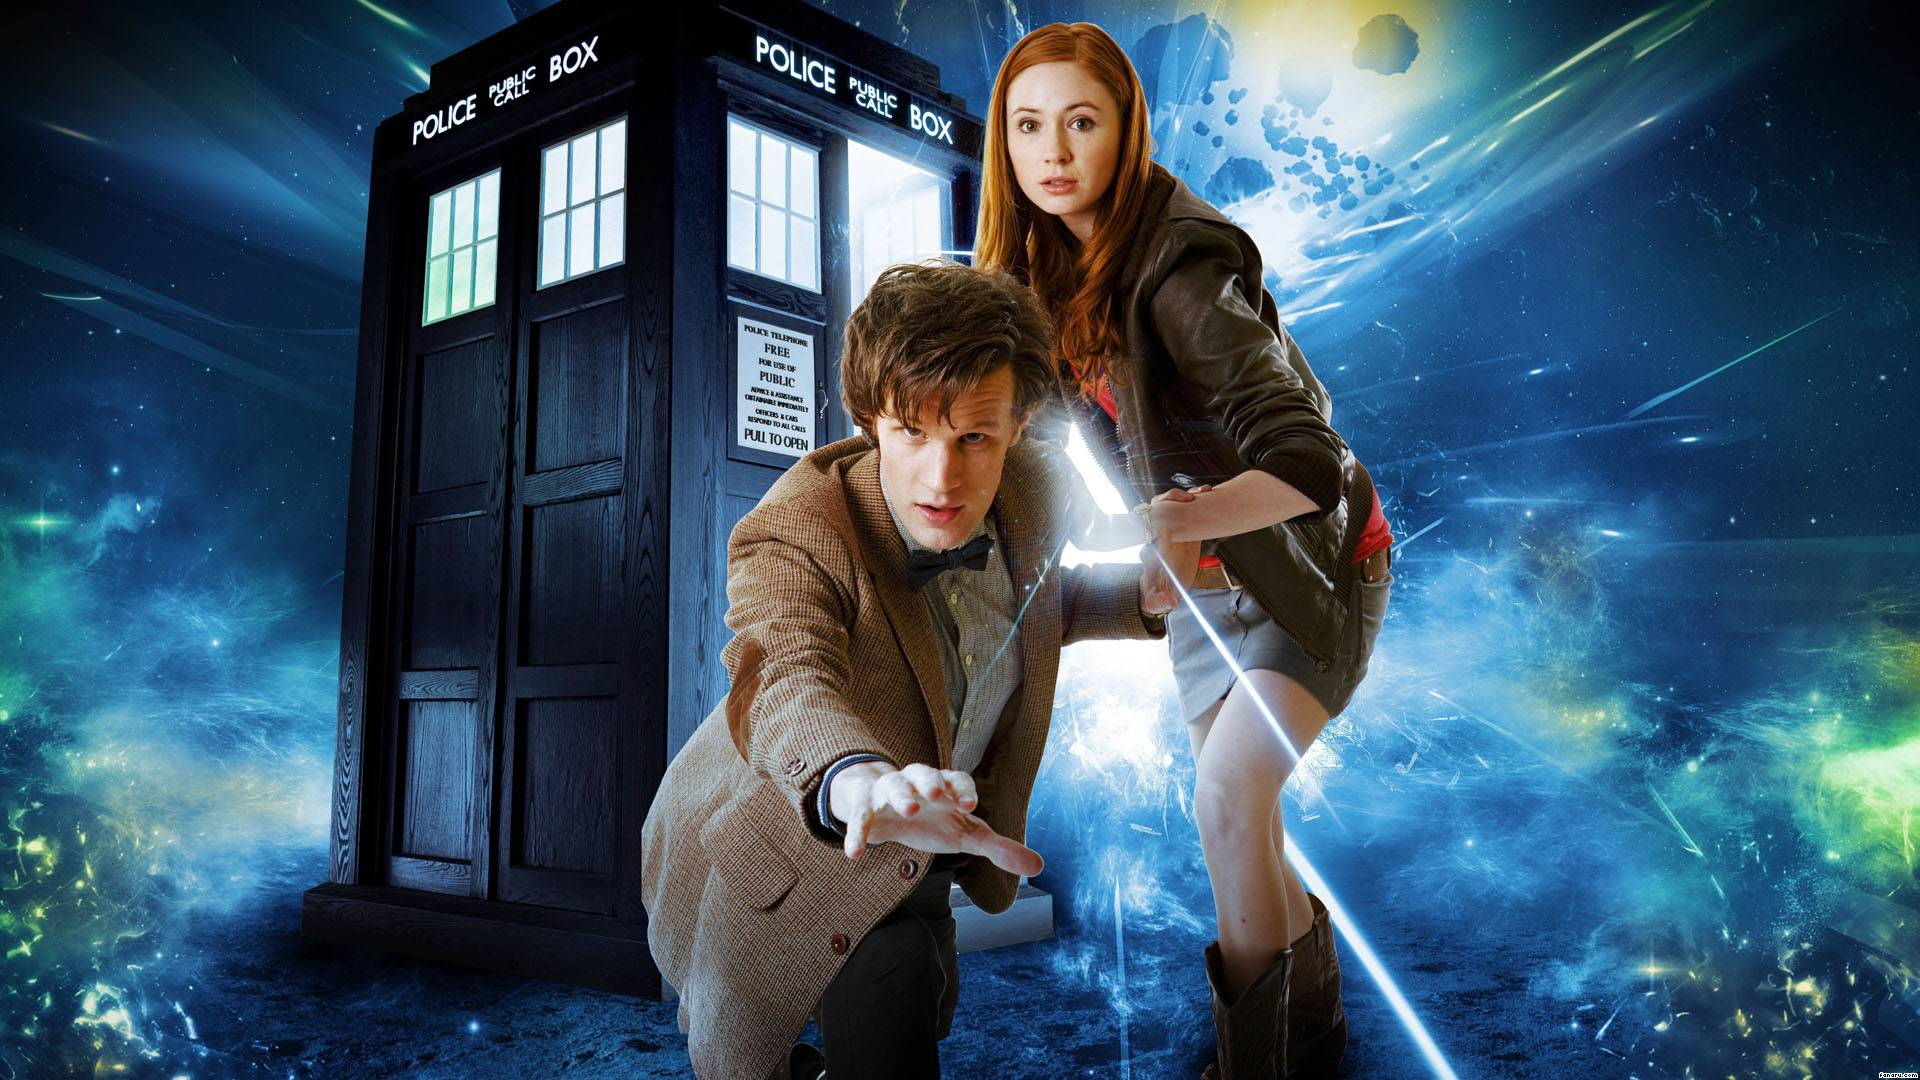 doctor who doctor who wallpaper (x)